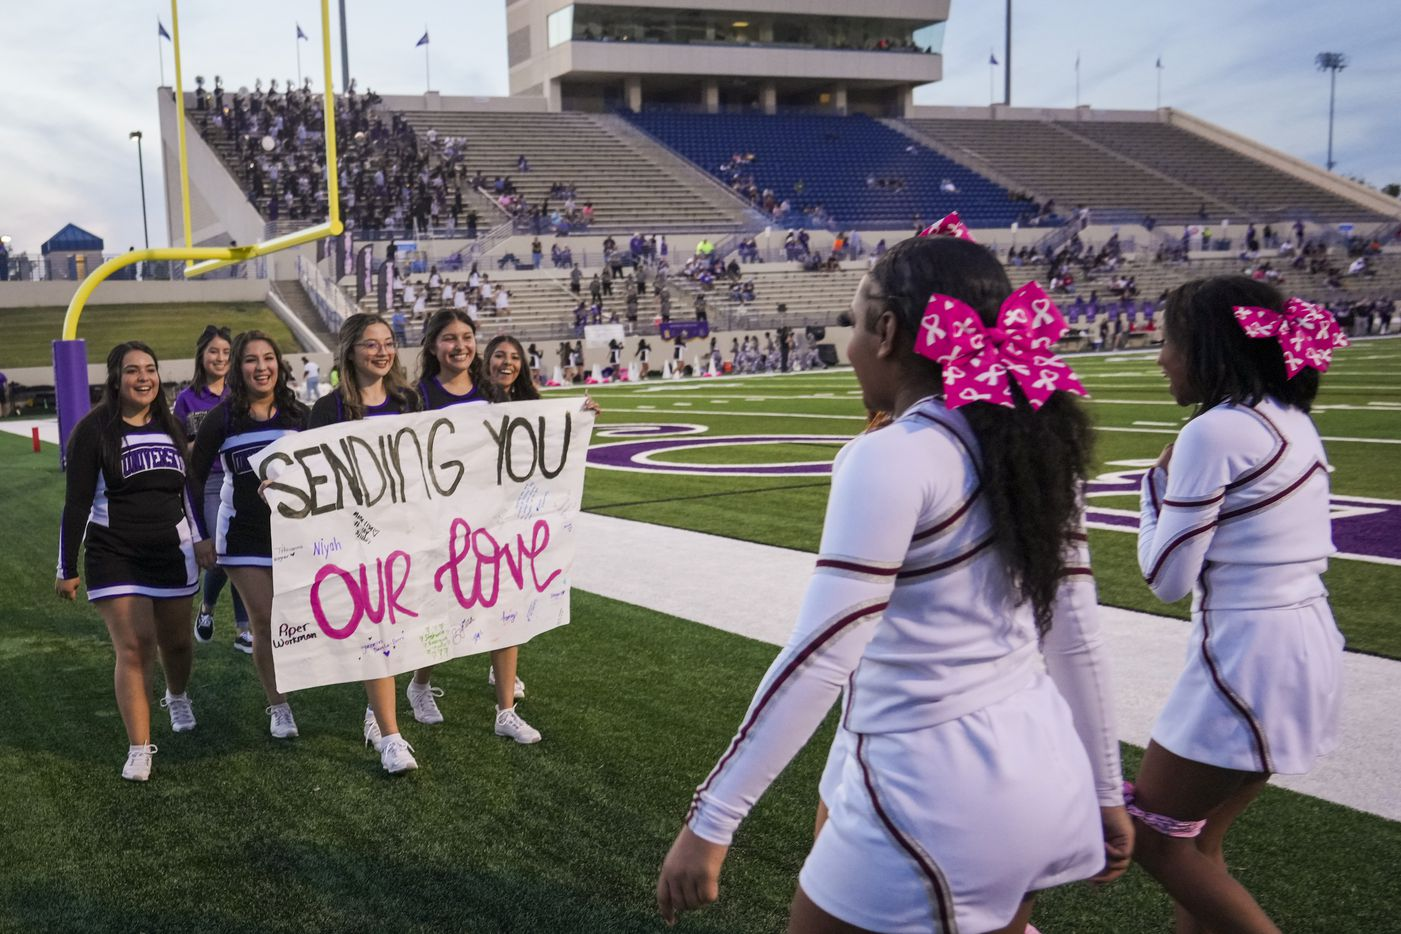 """Mansfield Timberview cheerleaders (right) are met by their counterparts from Waco University High School who presented them with a banner reading """"Sending You Our Love"""" before a high school football game at Waco ISD Stadium on Friday, Oct. 8, 2021, in Waco, Texas."""